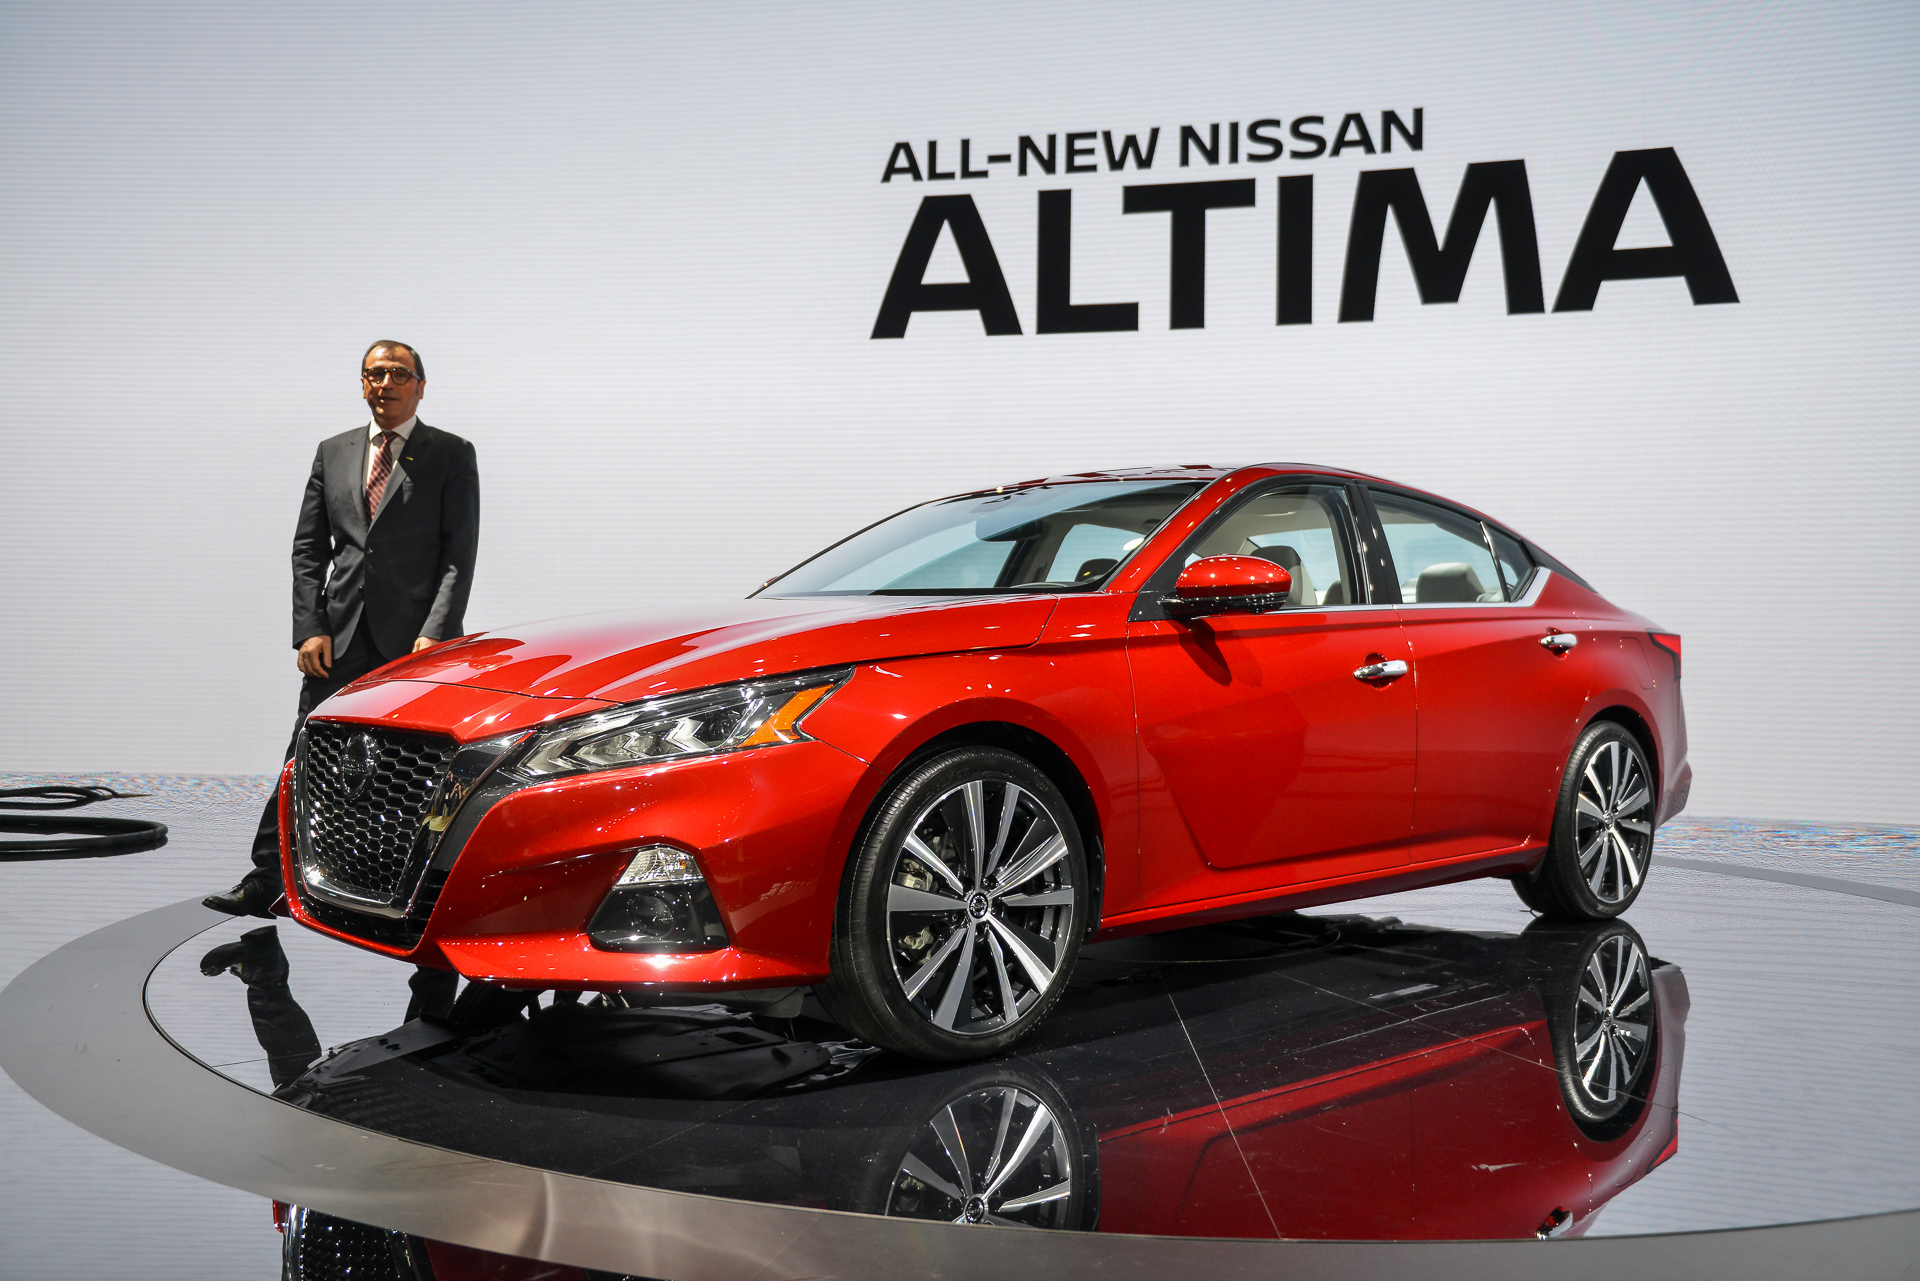 Used Nissan Altima For Sale >> 2019 Nissan Altima video first look: 2018 New York auto show